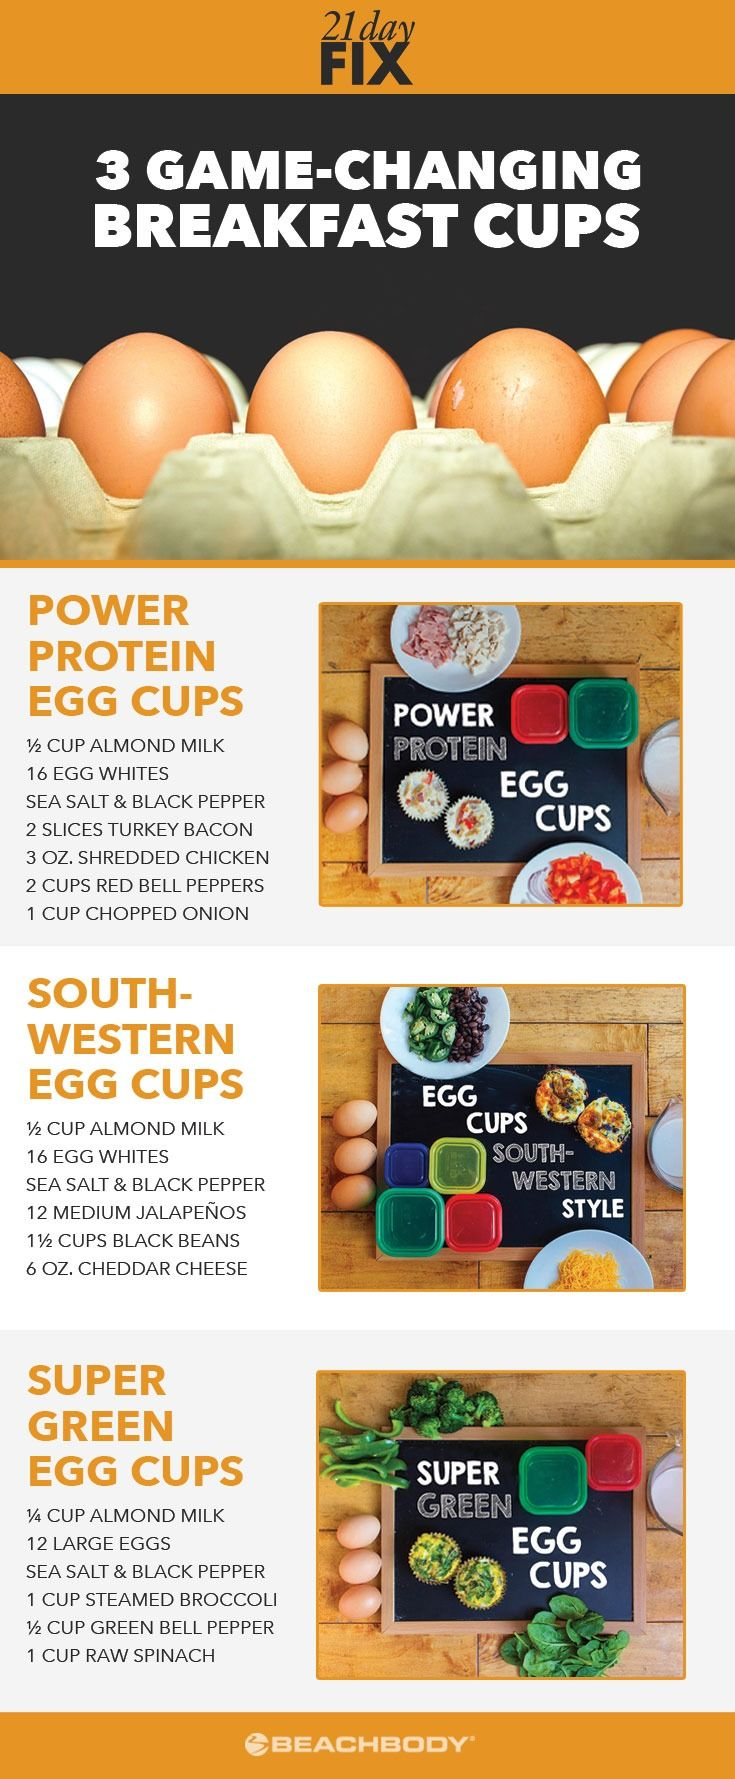 Mornings can be hectic. Whip up any of these easy breakfast (or lunch!) egg muffin recipes for 21-Day Fix-approved nutrition on-the-go! Breakfast // healthy breakfast // egg cups // healthy eating // high protein // 21 Day Fix // 21 Day Fix Recipes // Beachbody // Beachbody Blog